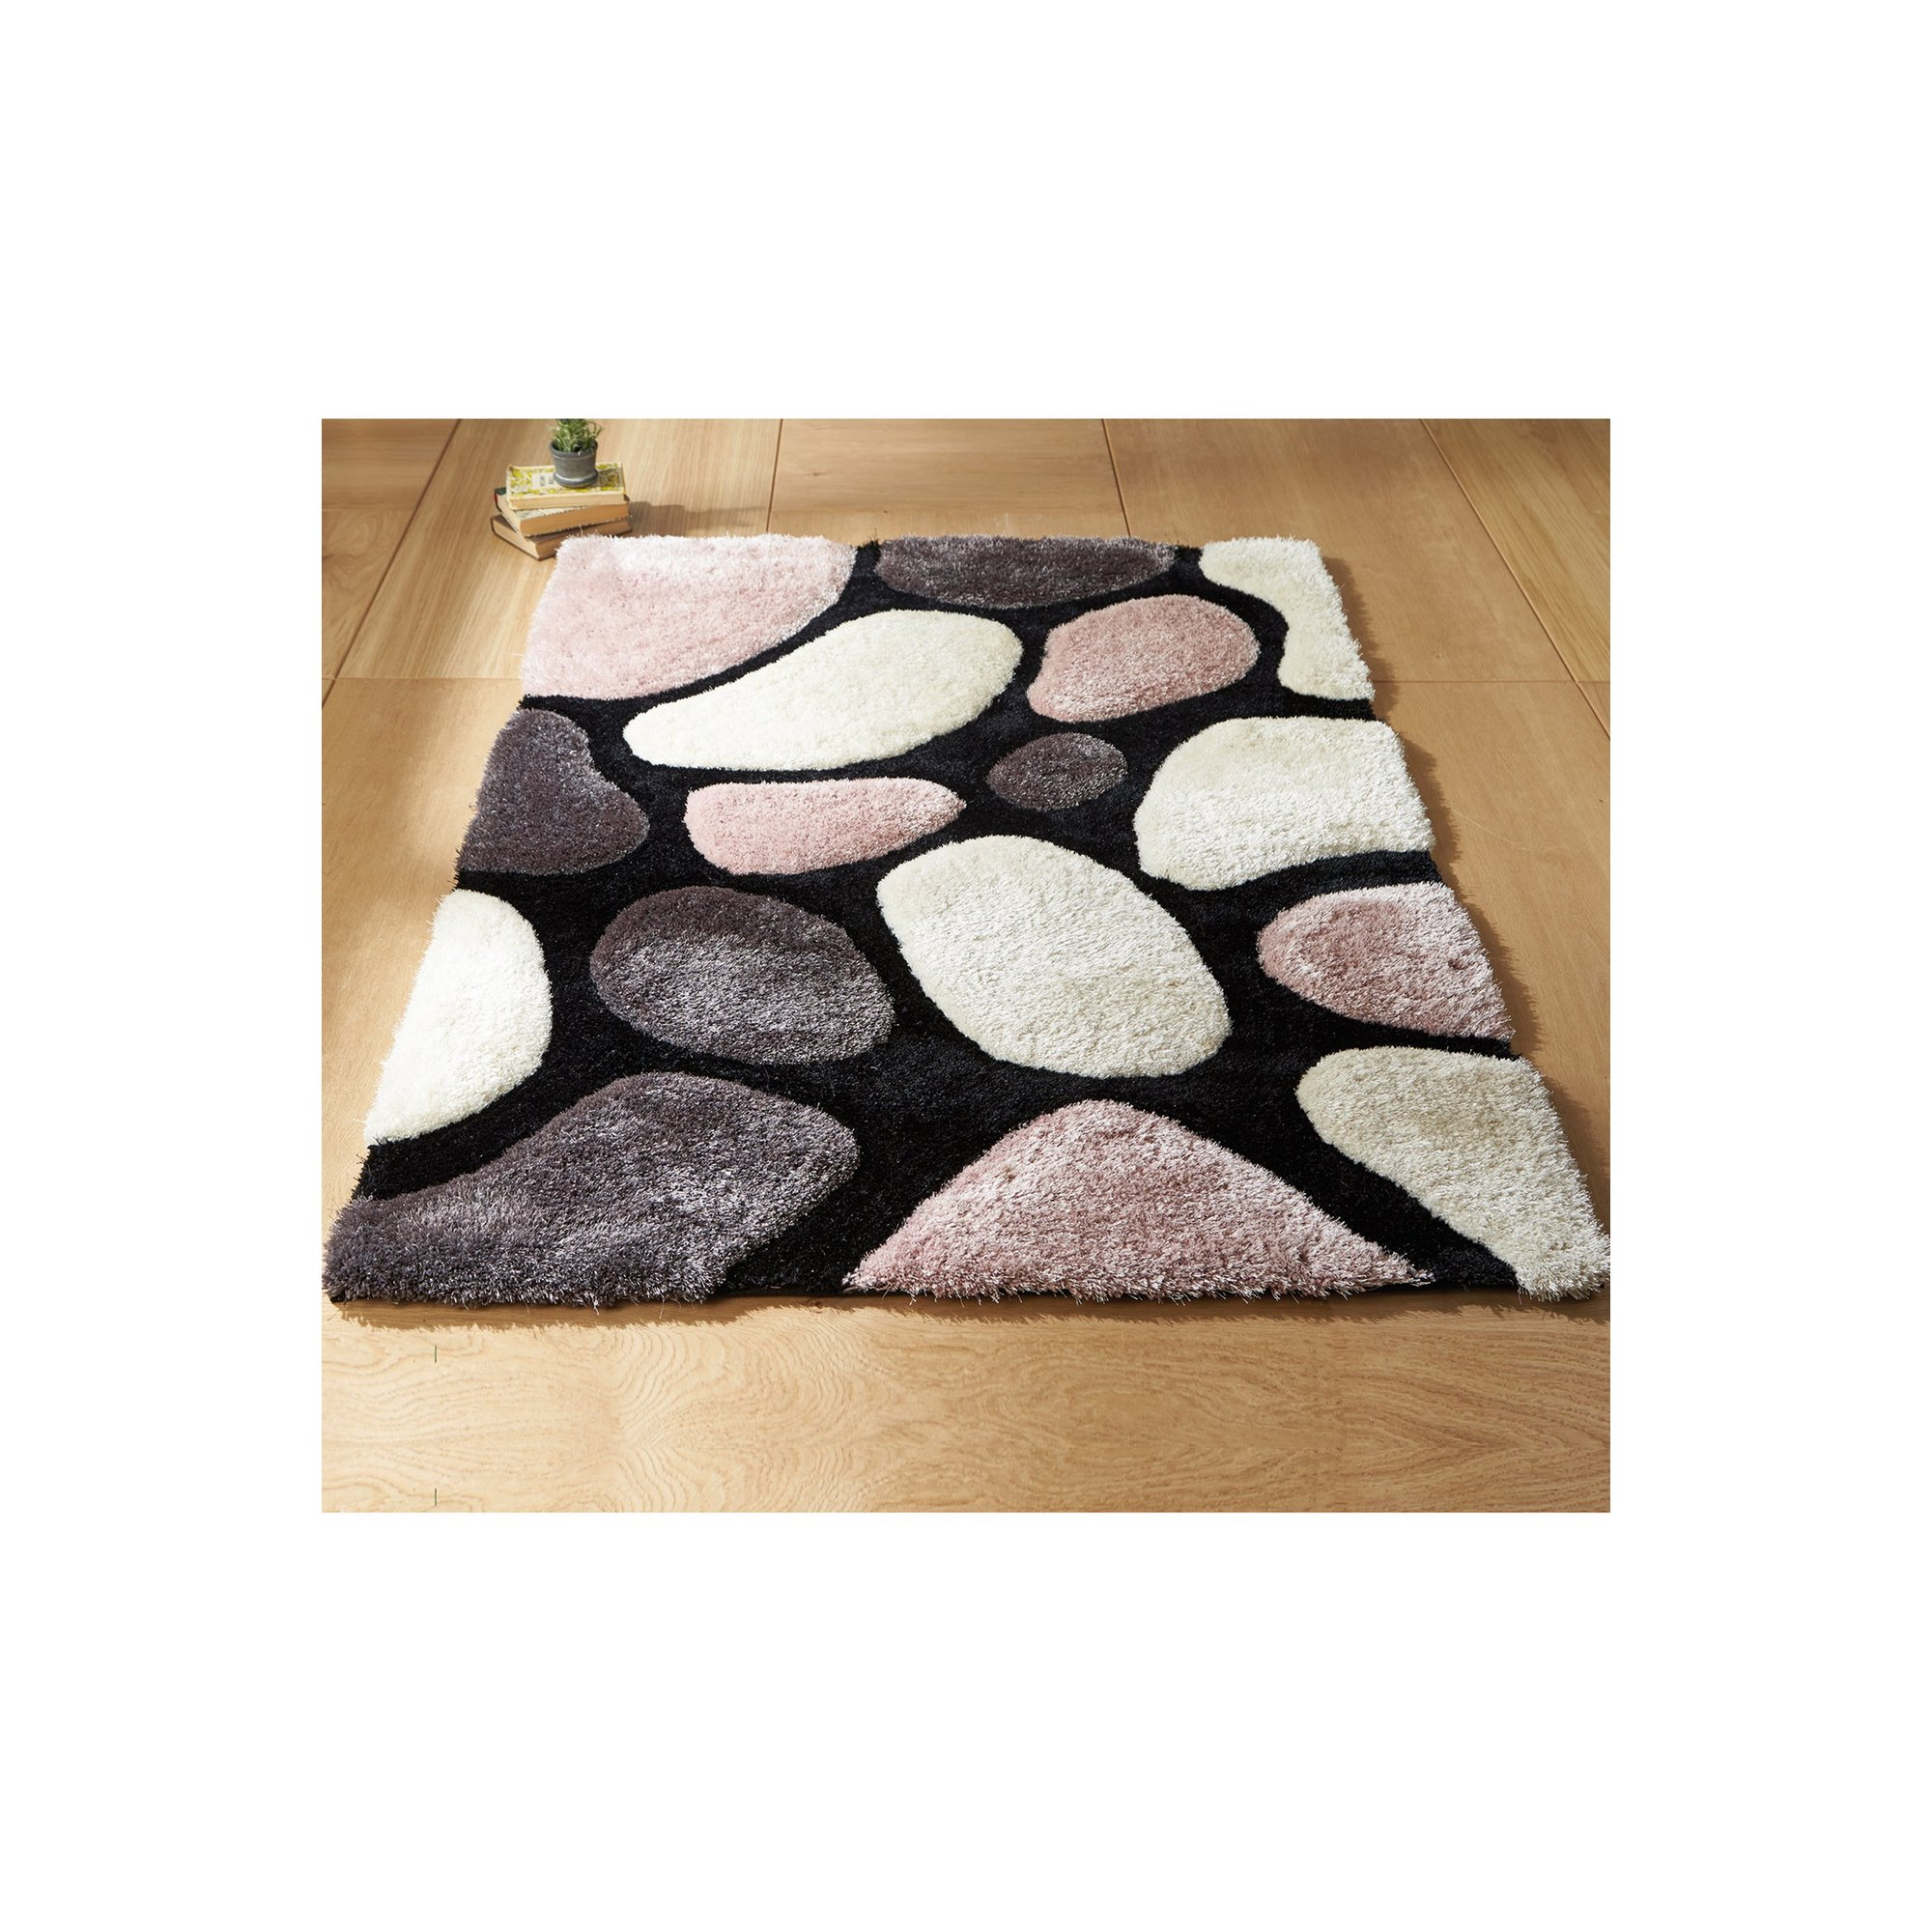 Image of 3D Stepping Stones Rug